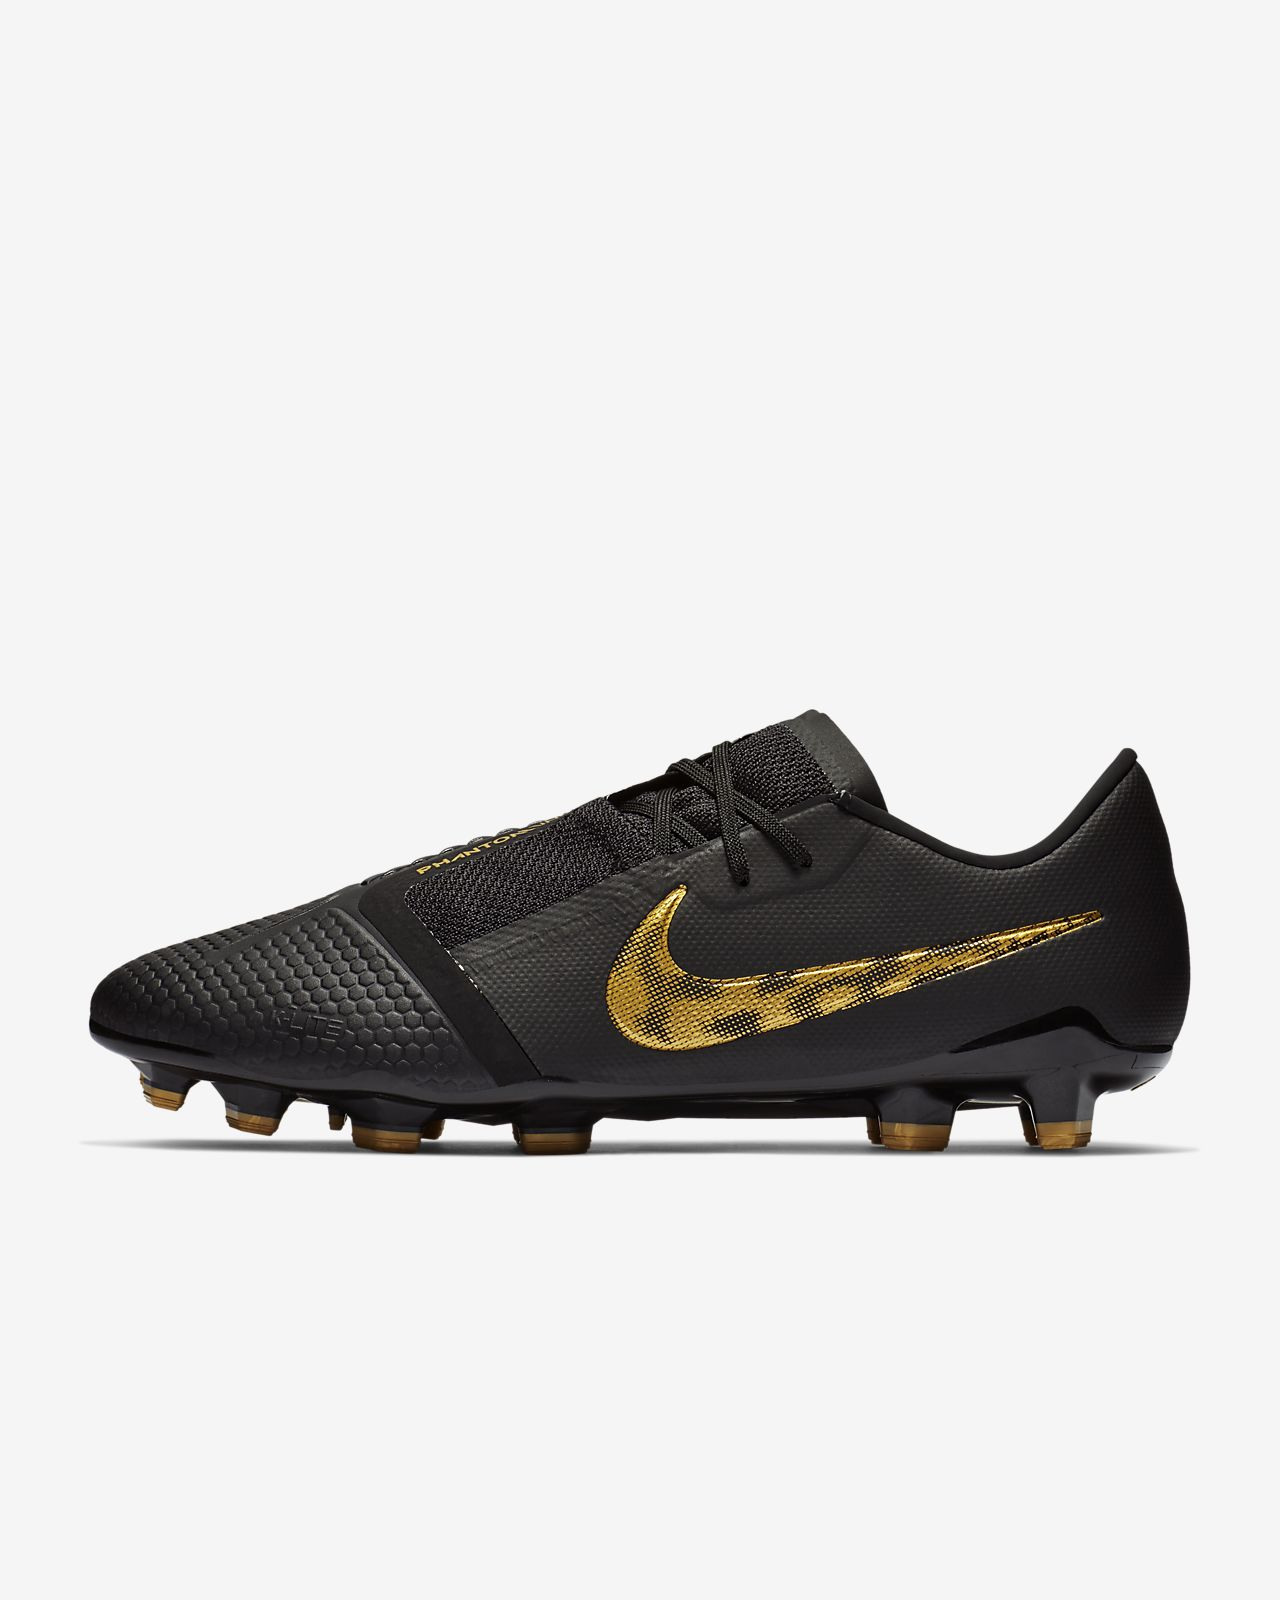 Nike PhantomVNM Pro FG Game Over Firm-Ground Soccer Cleat